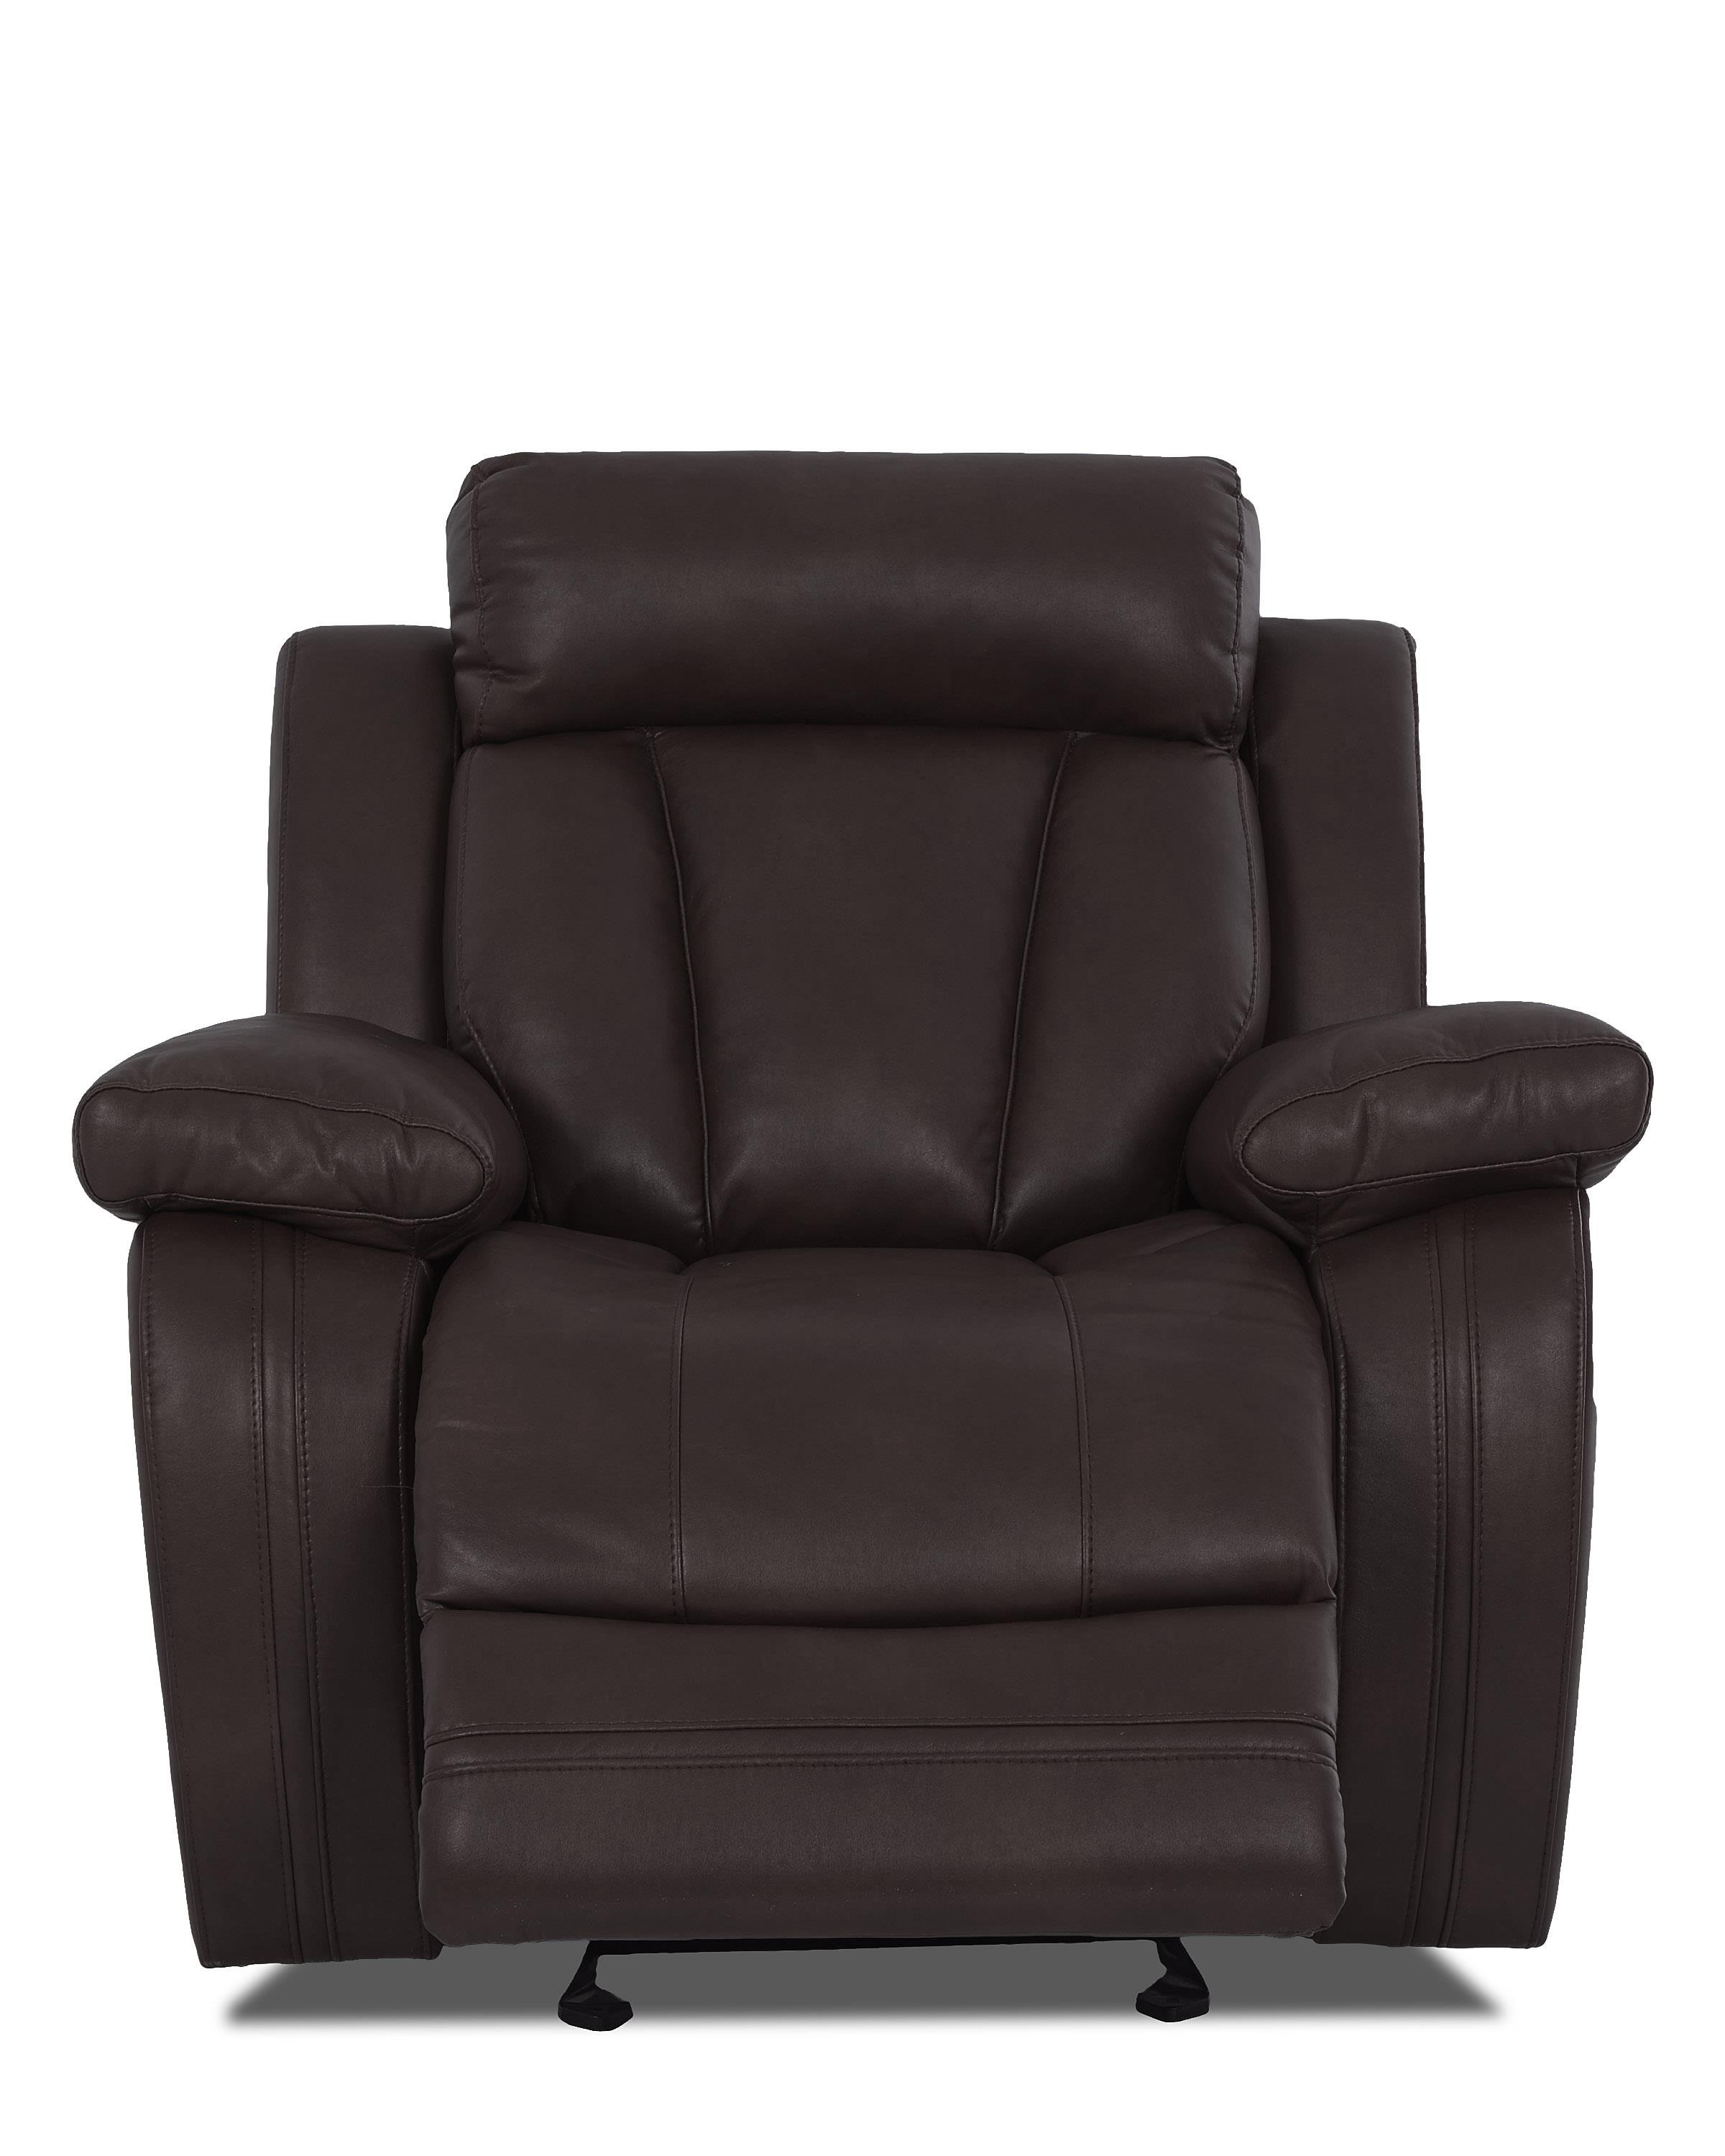 Atticus-US Gliding Recliner Chair by Klaussner International at Rooms for Less